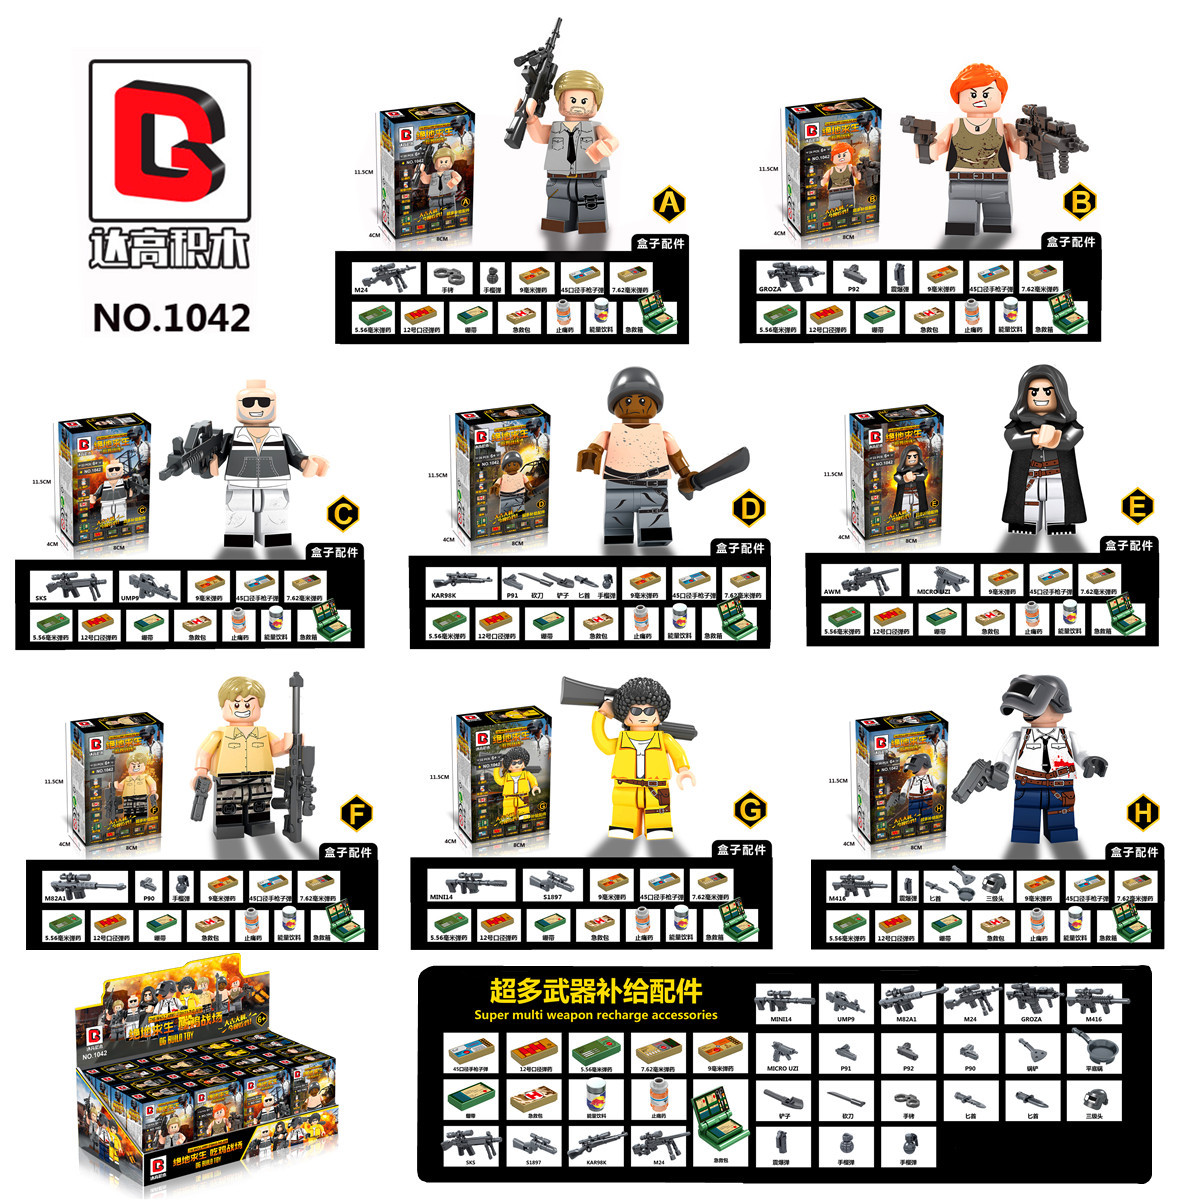 8pcs/set PUBG FPS Game MILITARY Winner Winner Chicken Dinner Army SWAT Soldier Building Blocks Figure Educational Toys Boys Gift